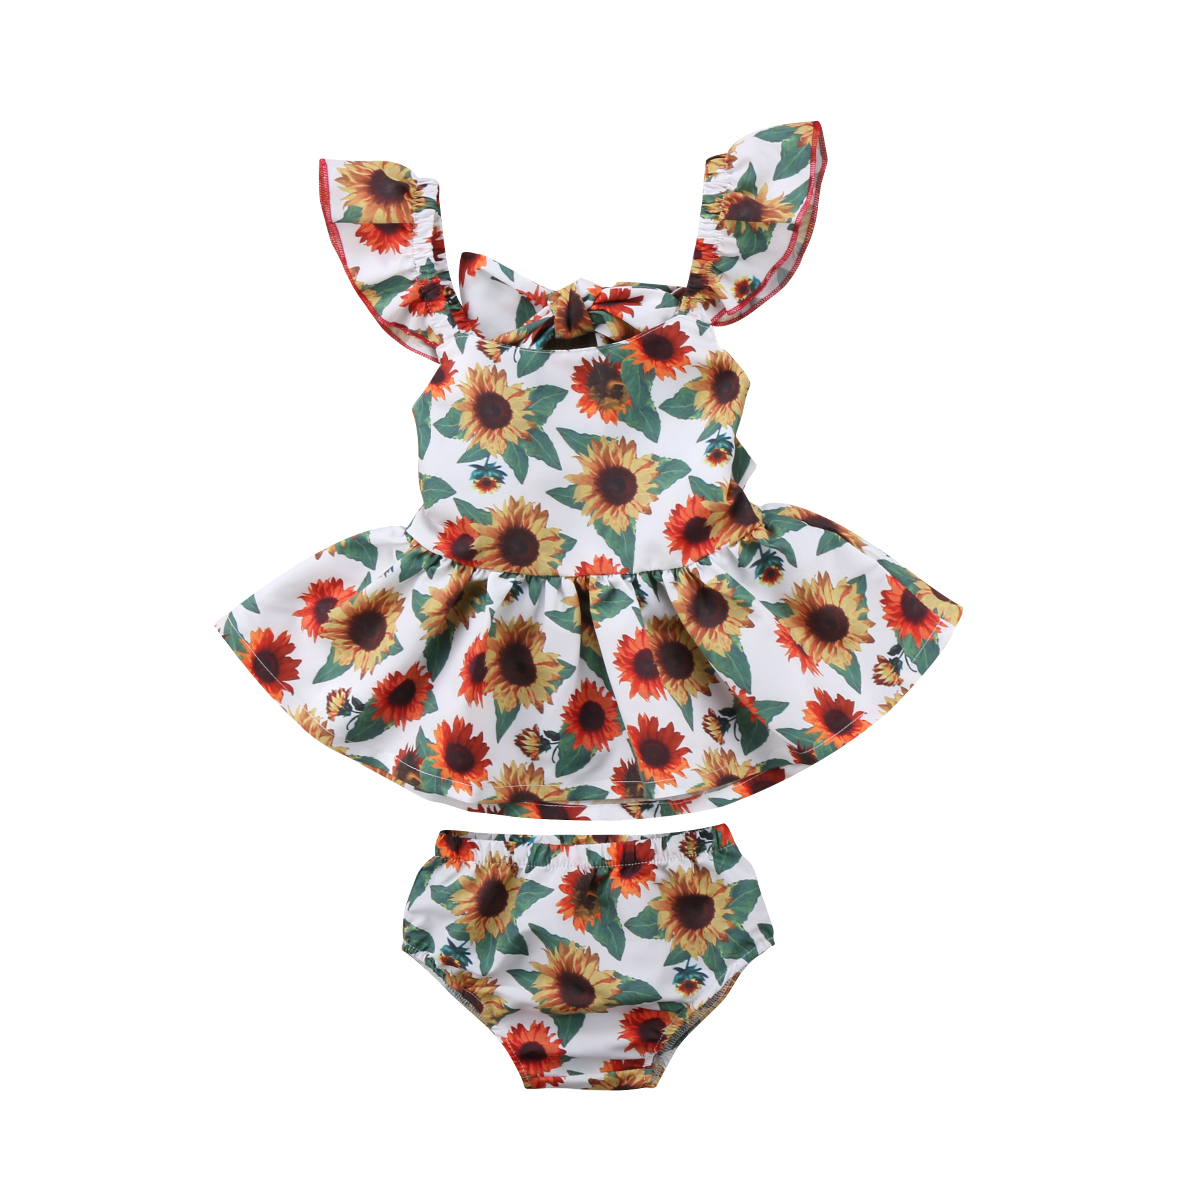 Pudcoco 2PCS HOT SALE Fashion Infant Baby Girls Kids Floral Fly Sleeve Blouse And Pant Clothes Set 0-24M